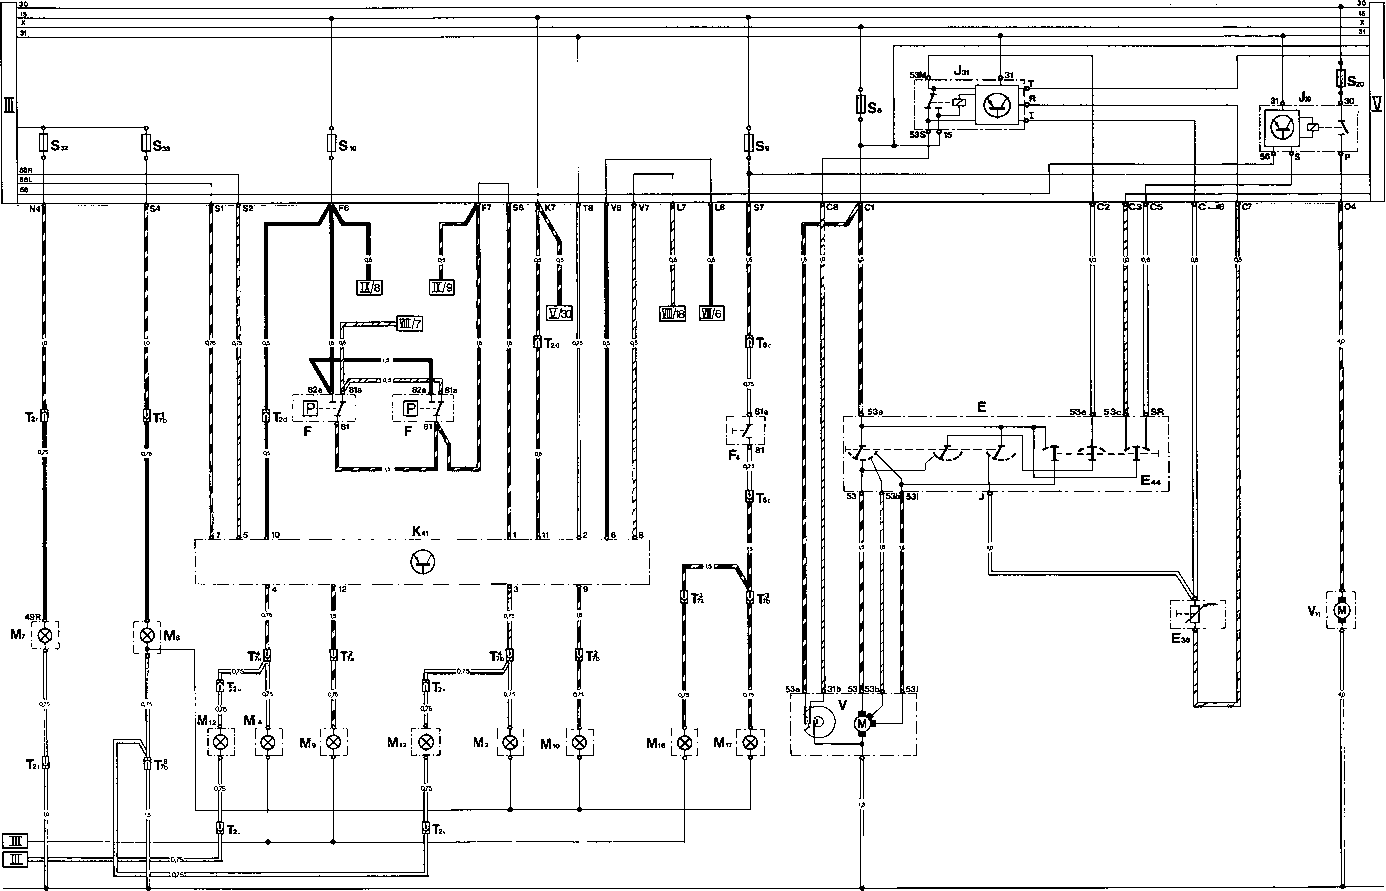 Current Flow Diagram Type 928 Usa Part Iv